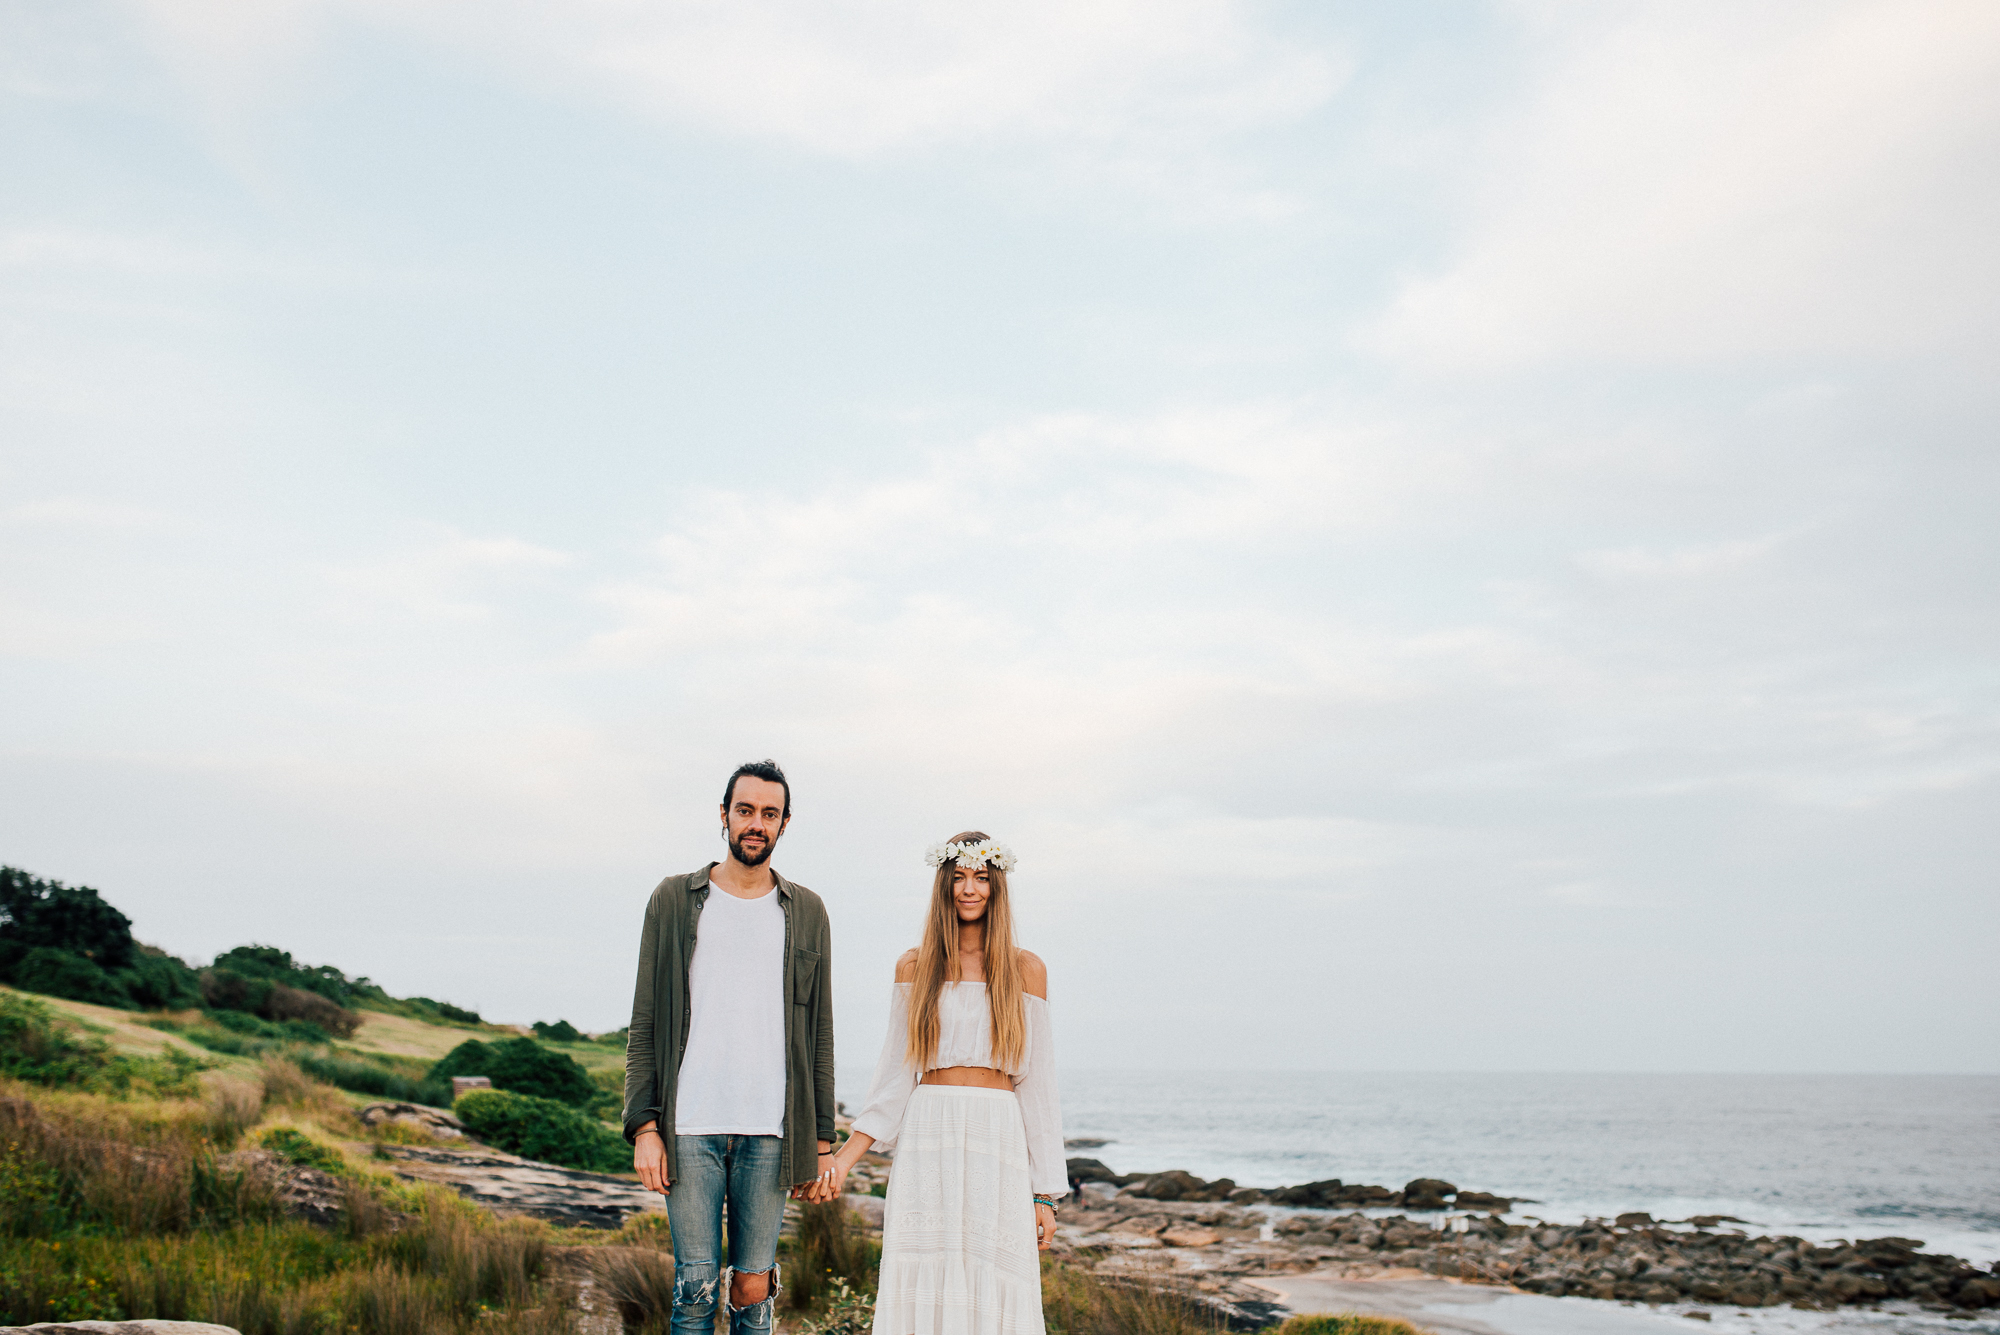 Clovelly Beach - Sweethearts Session